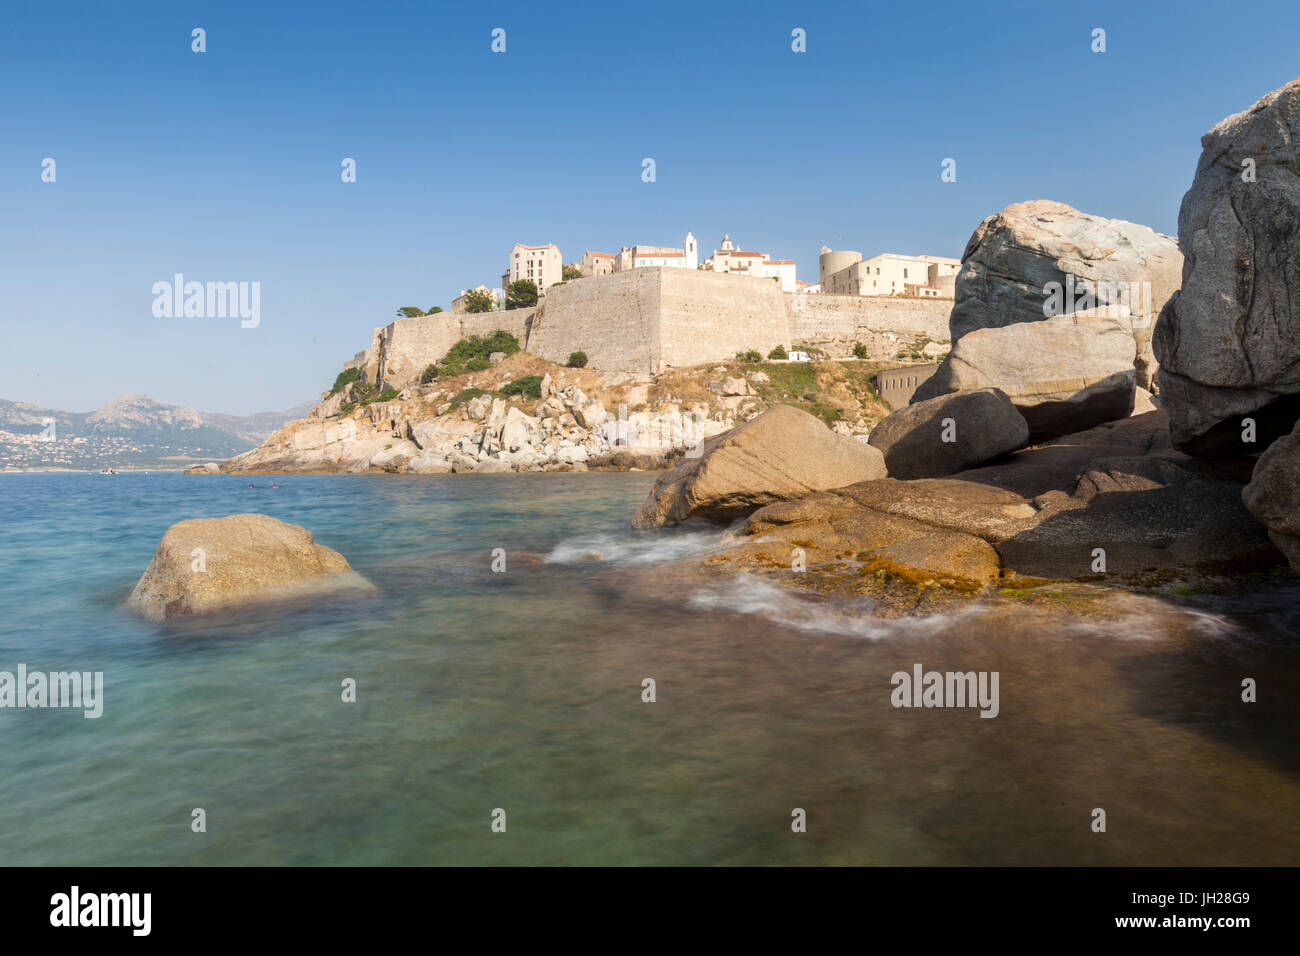 The old fortified citadel on the promontory surrounded by the clear sea, Calvi, Balagne Region, Corsica, France, - Stock Image